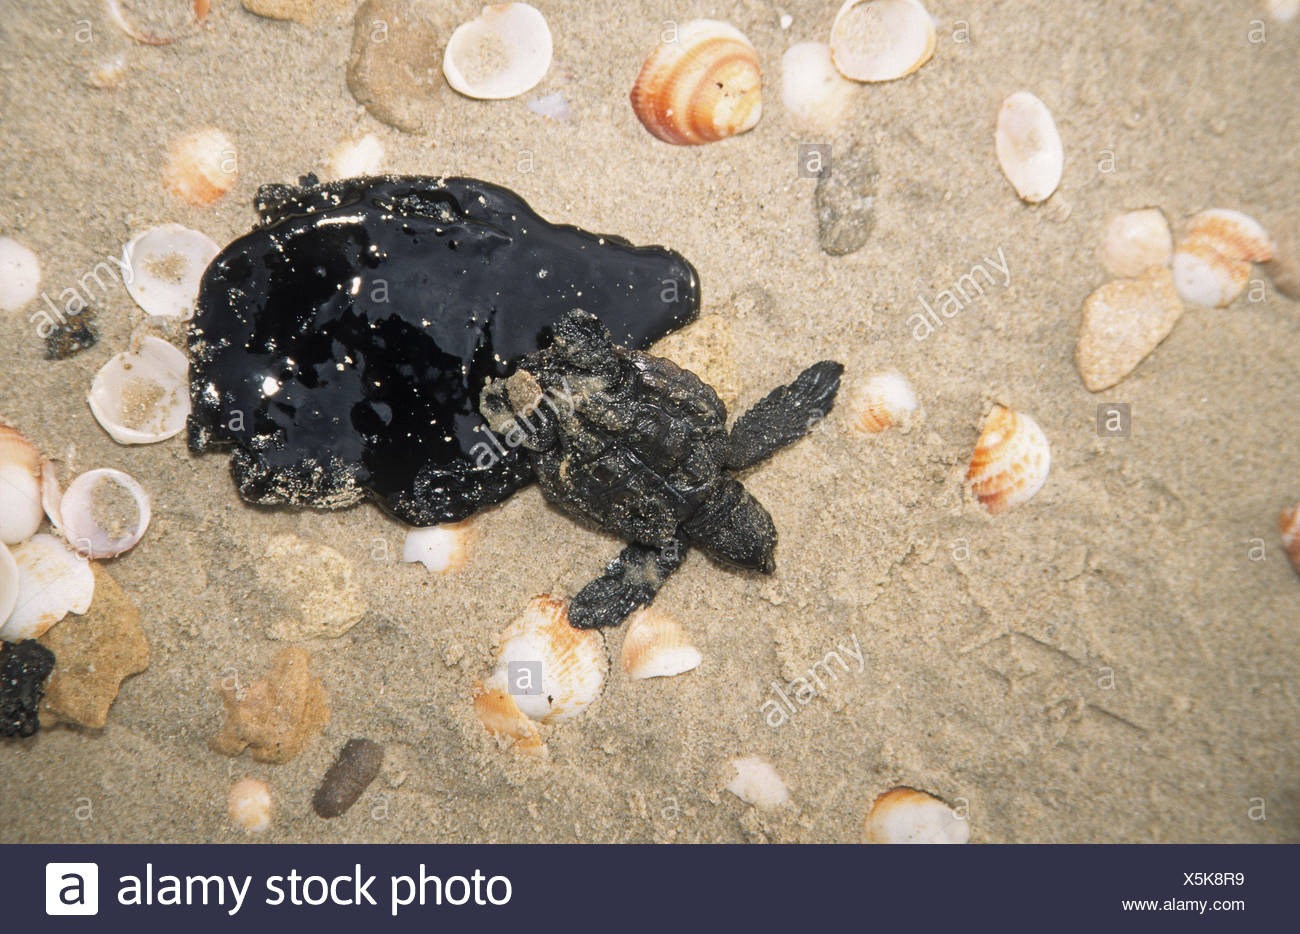 Marine pollution - young sea turtle stuck in crude oil - Stock Image